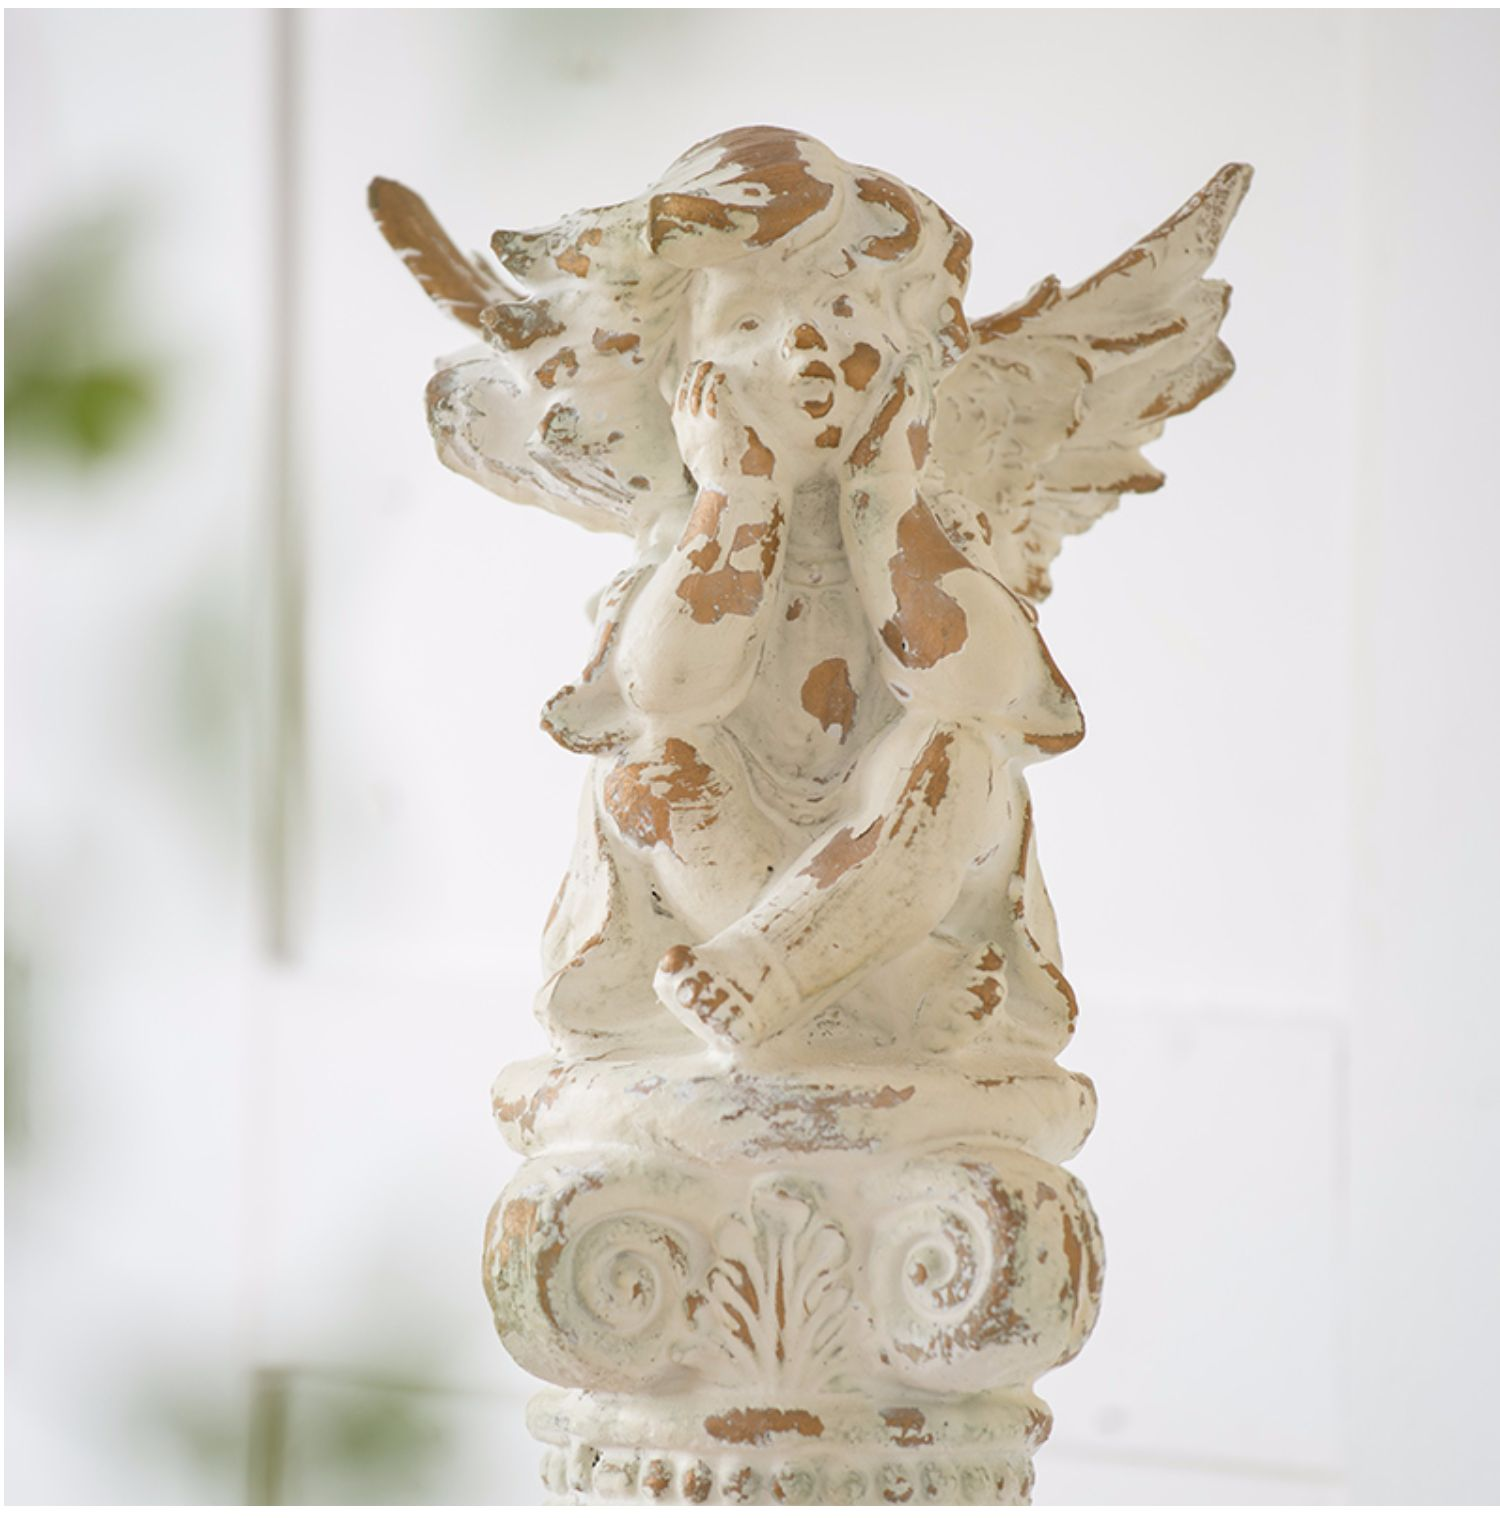 Home Garden Decoration Accessories Angel Boy Sitting On Roman Column Think Figurine Living Room Ornament Objects Sculpture Gifts